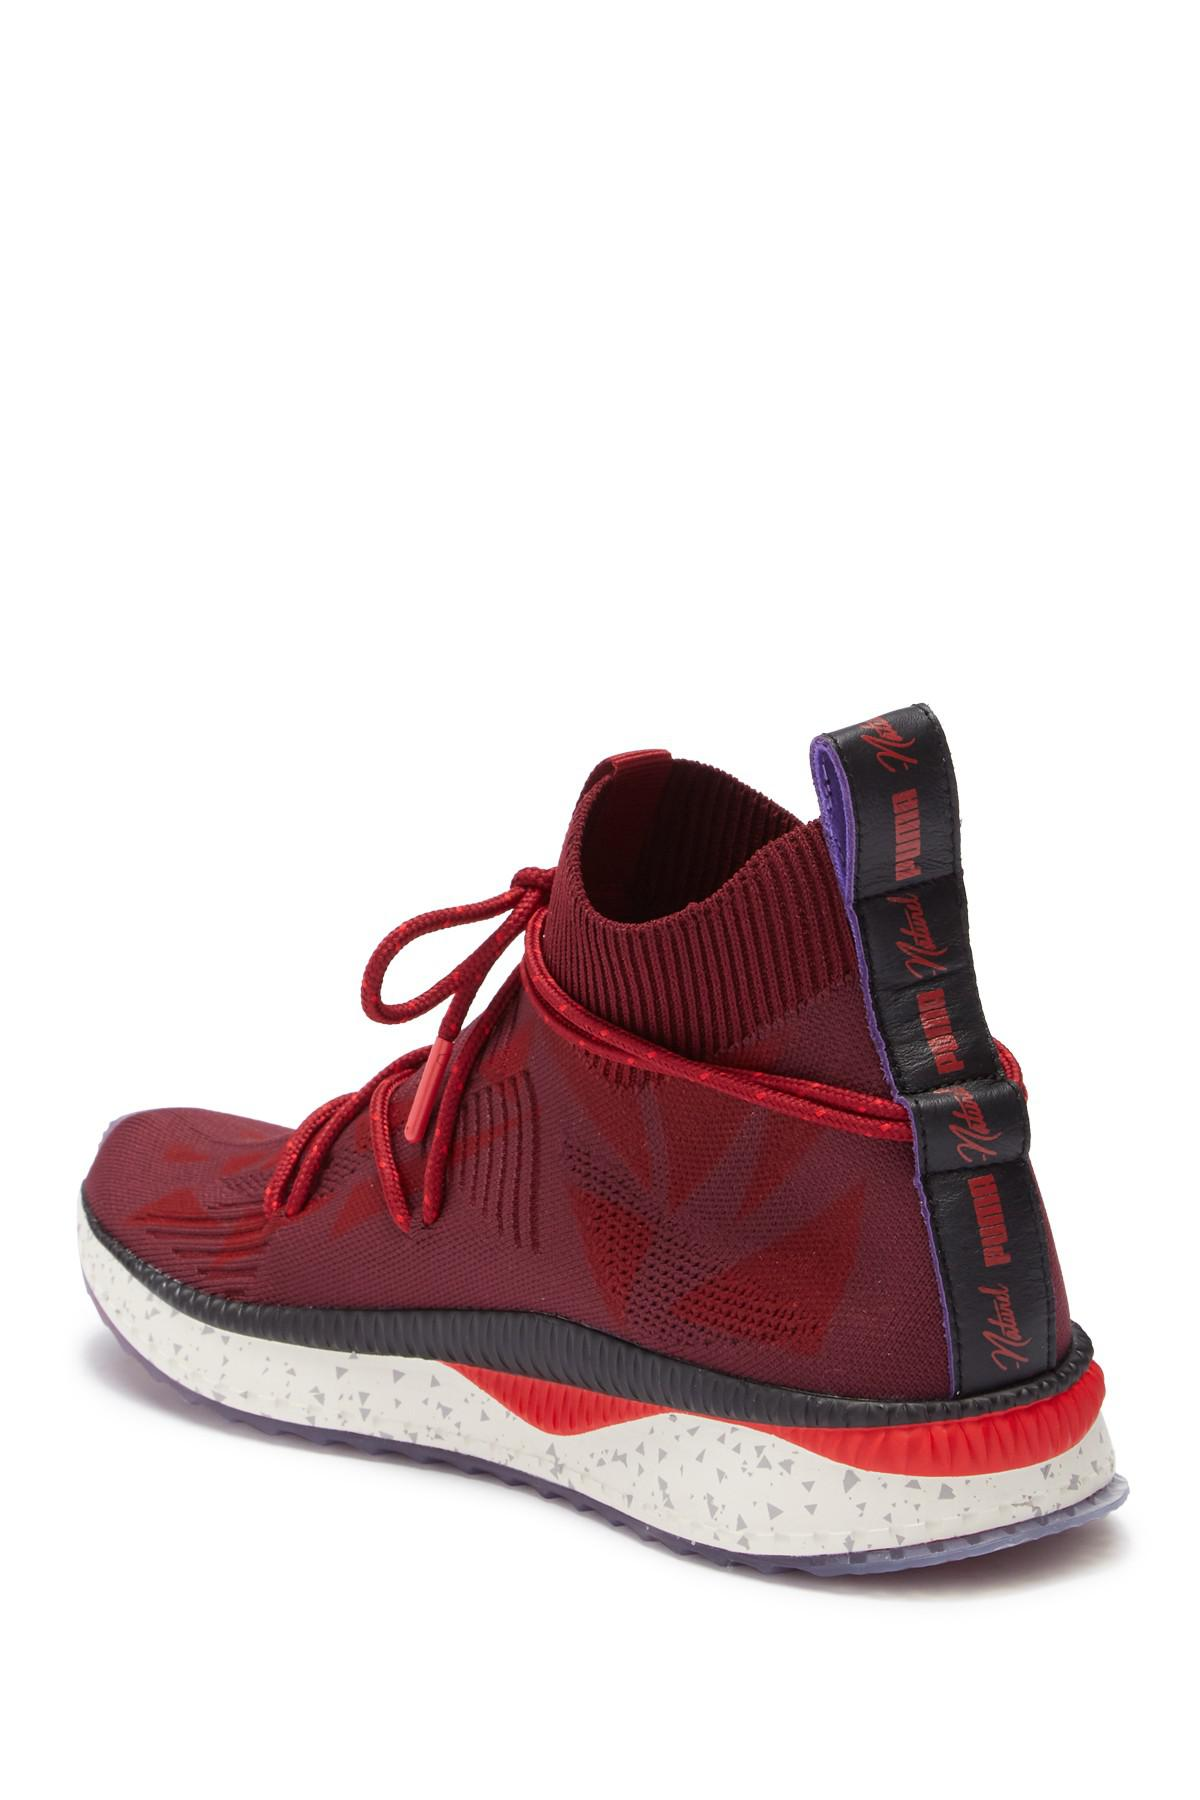 PUMA - Red X Naturel Tsugi Evoknit Sock Sneaker for Men - Lyst. View  fullscreen 6ff4e01ec